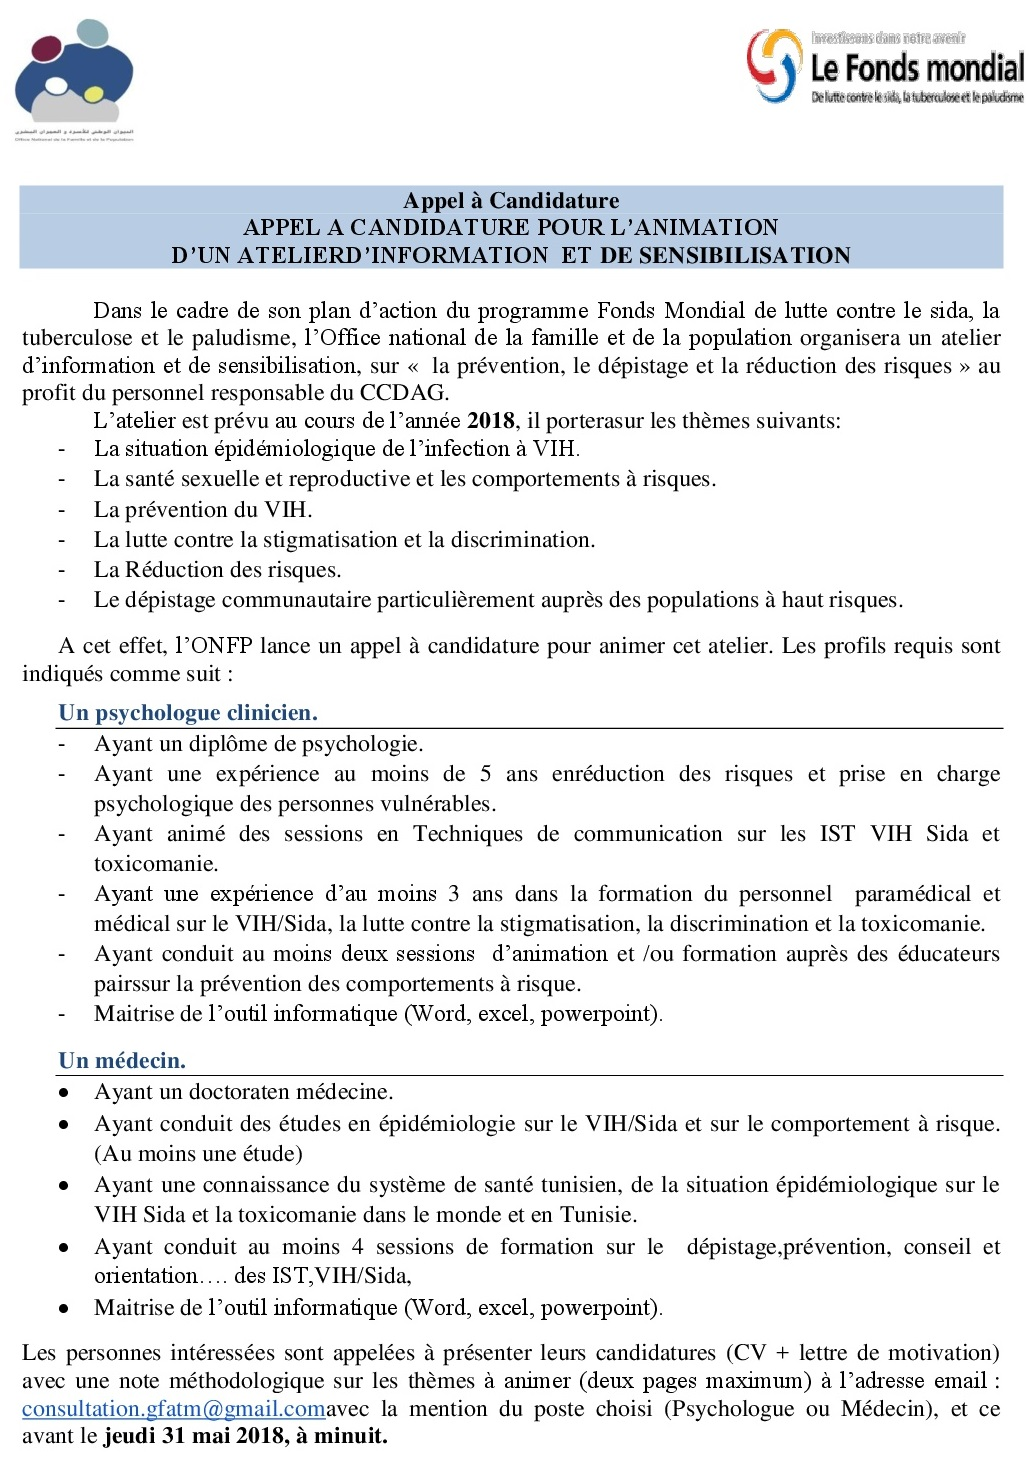 2 Appel candidature 31 mai ONFP 2018 001